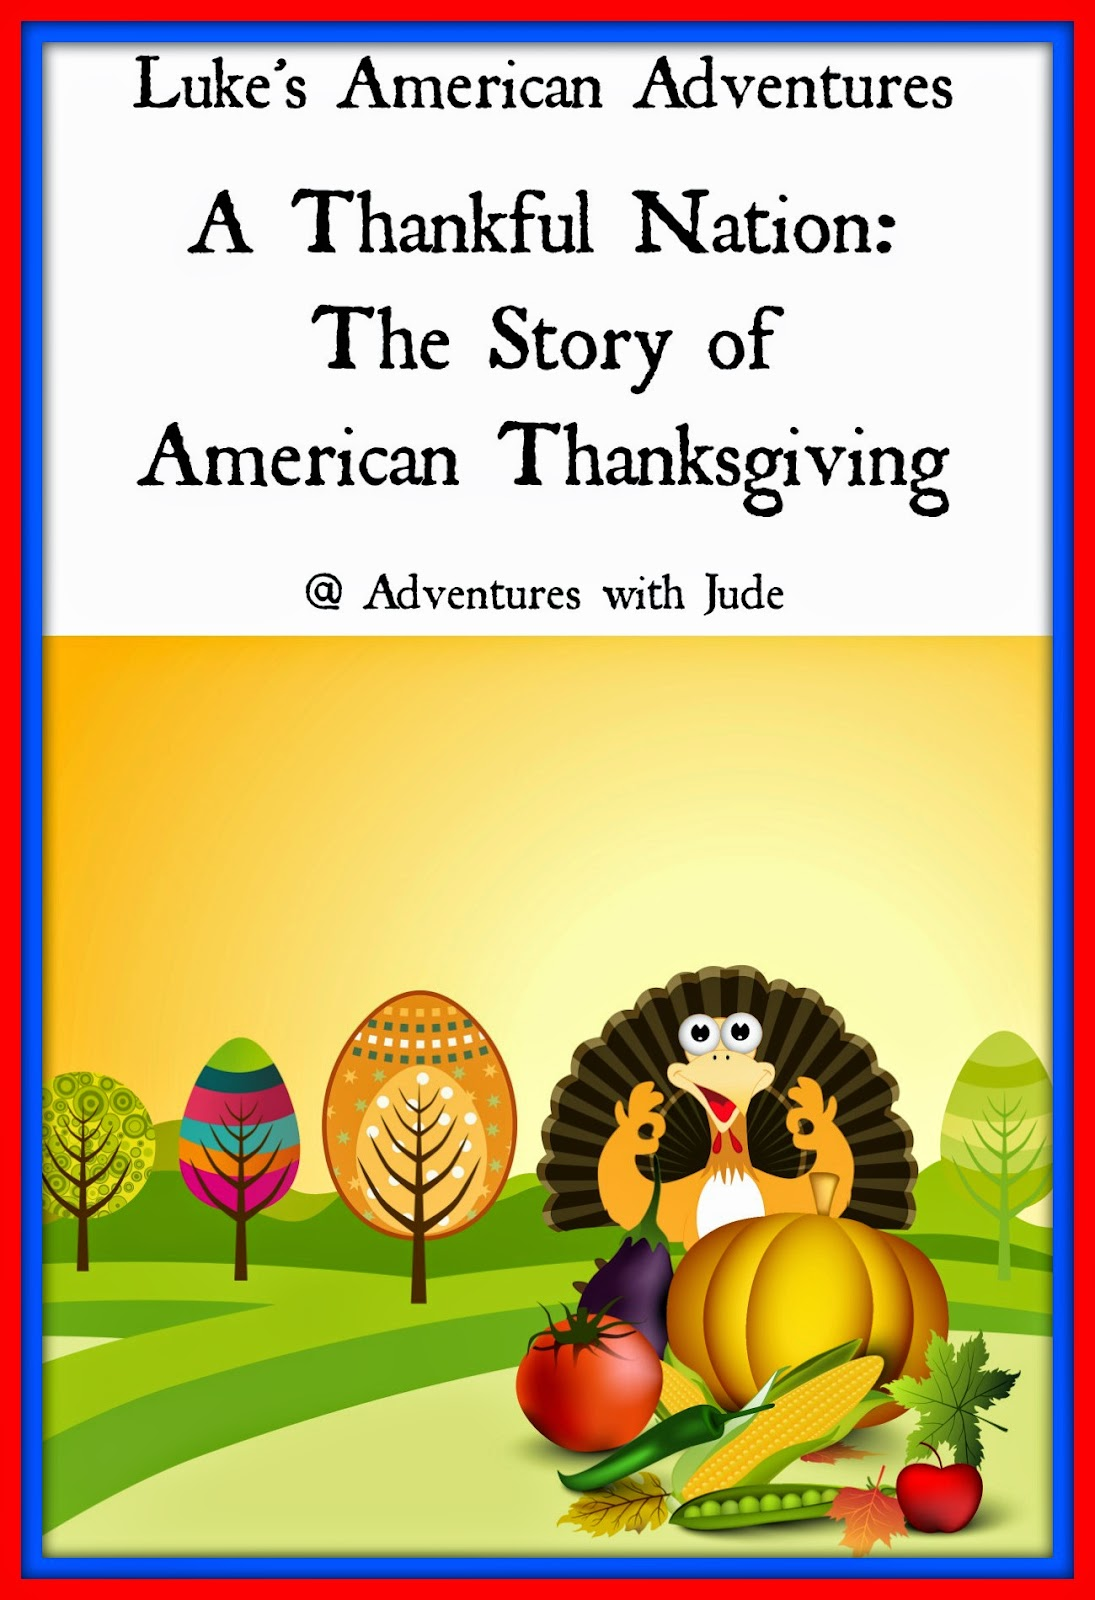 Luke's American Adventures: The Story of American Thanksgiving